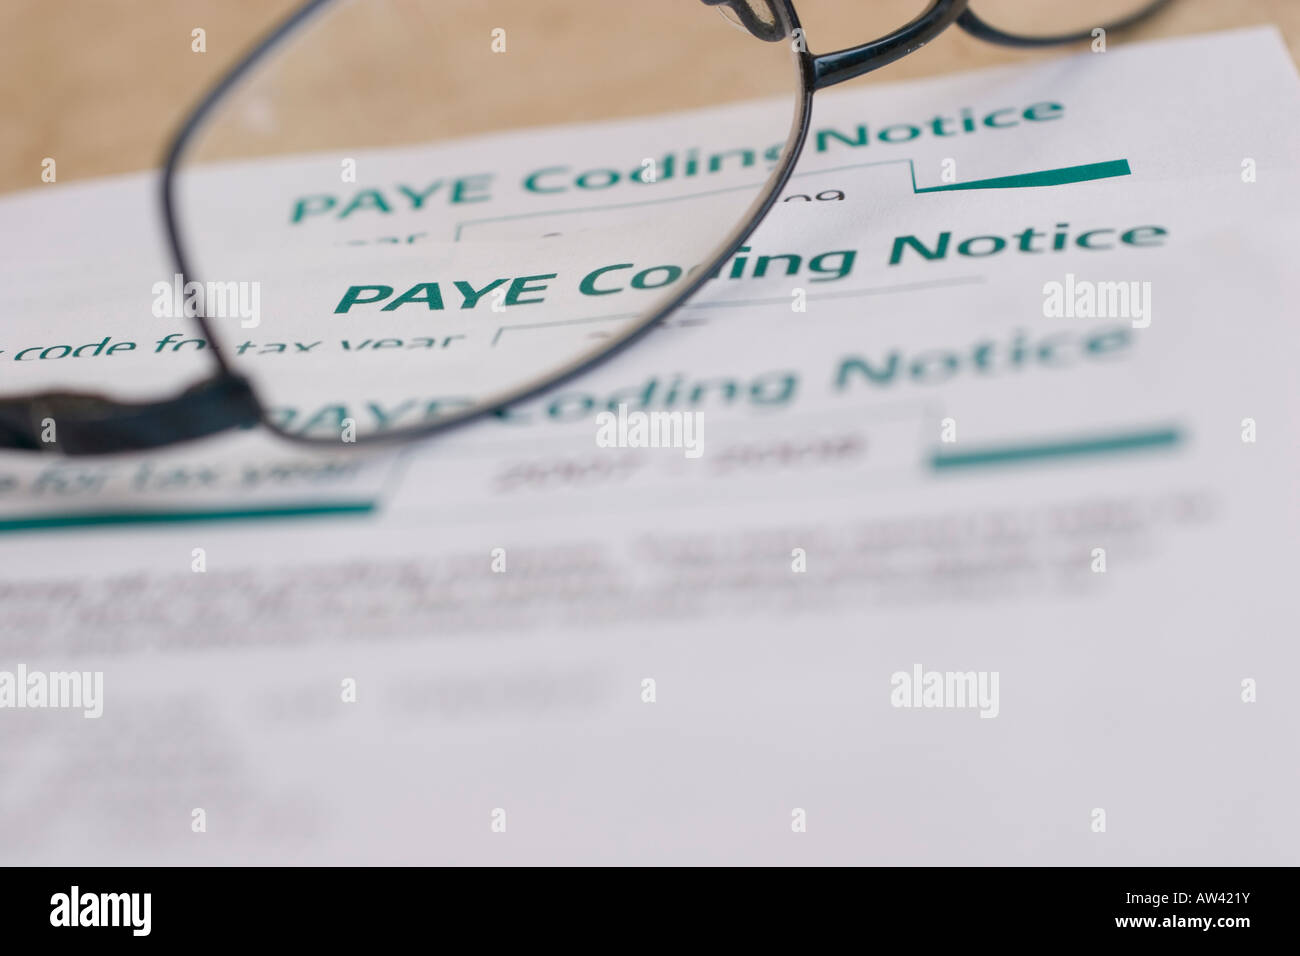 paye coding notice pay as you earn - Stock Image